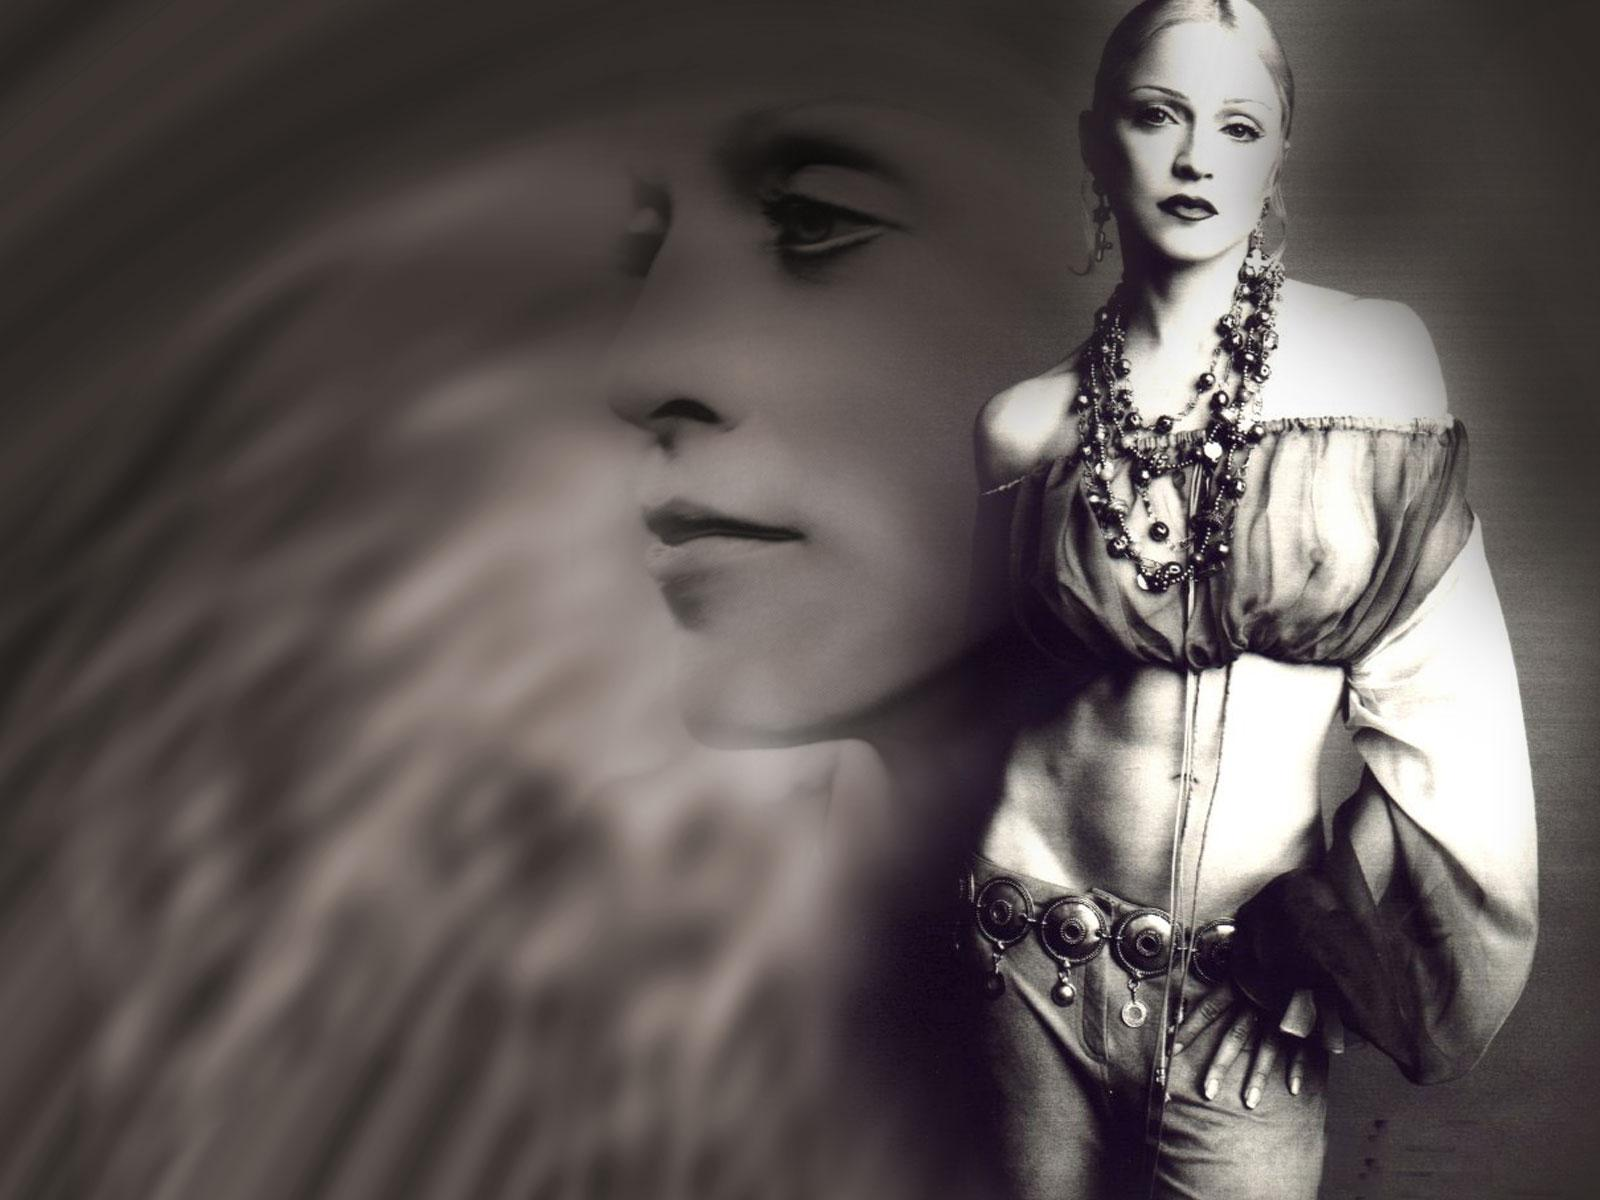 New Madonna Image, Madonna Wallpapers